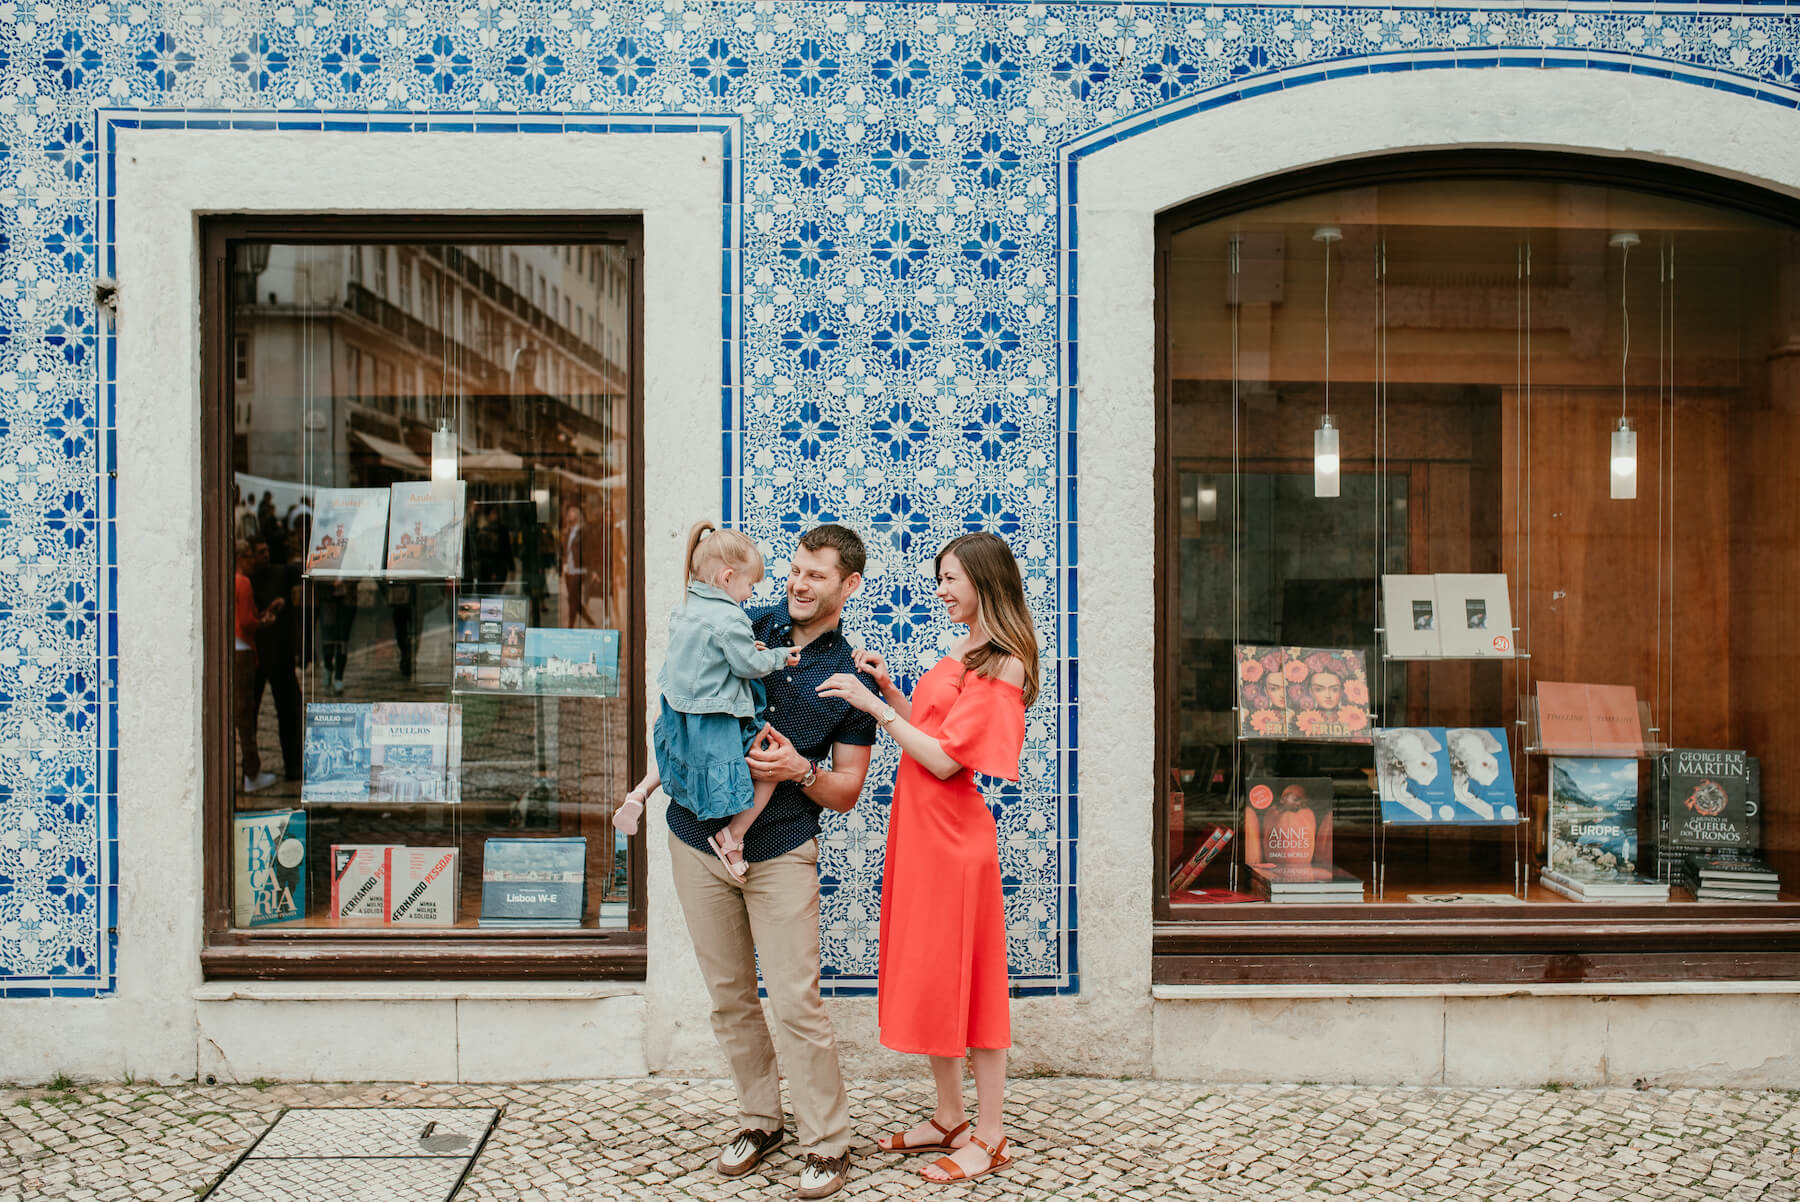 a family standing in front of book store in Lisbon, Portugal